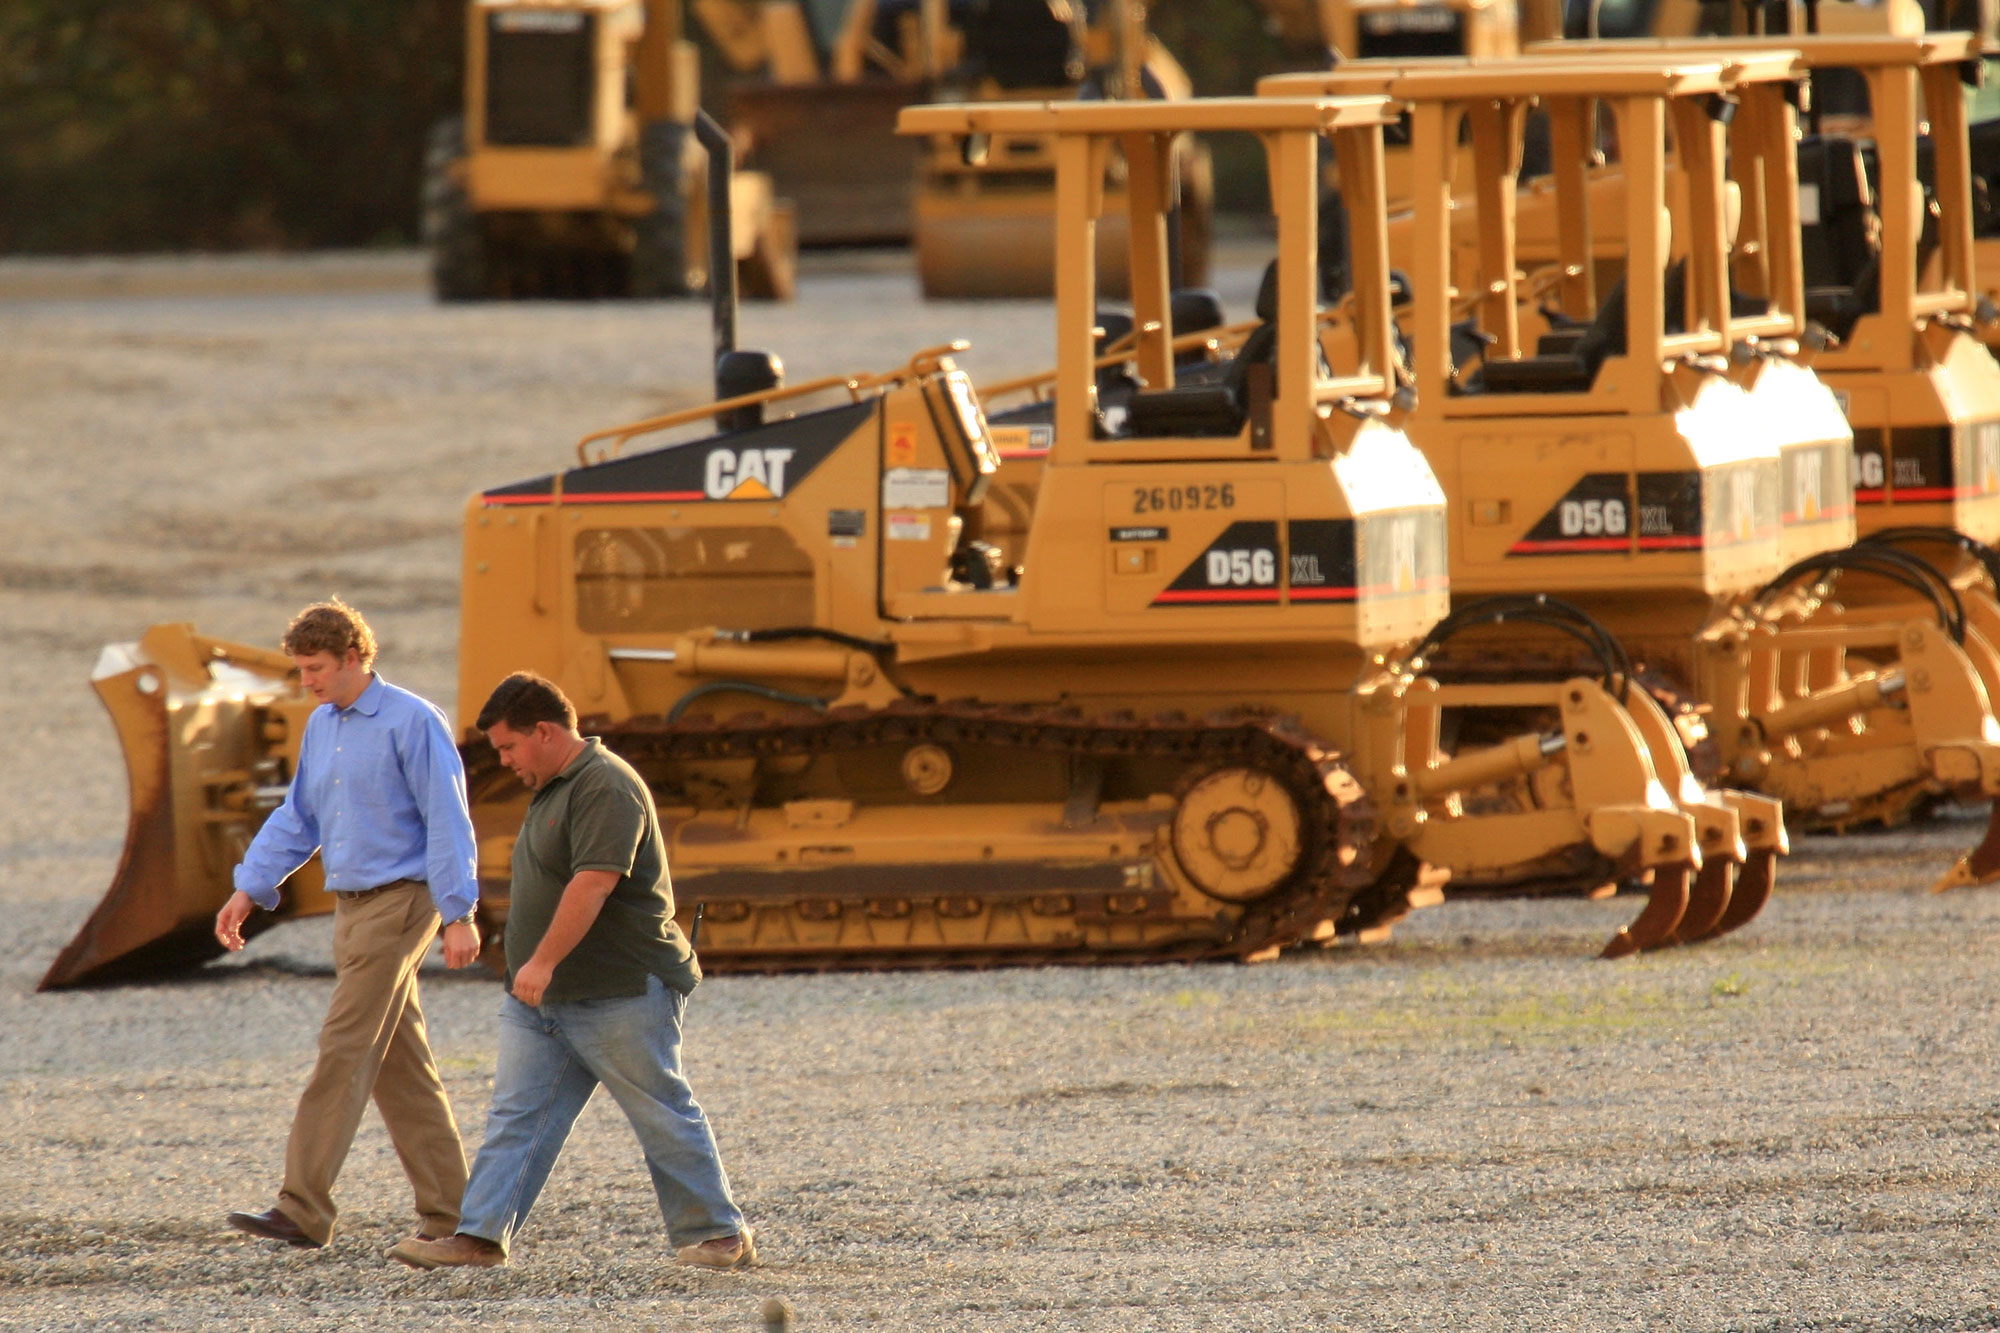 Caterpillar To Shed 20,000 Jobs Worldwide As Profits Fall